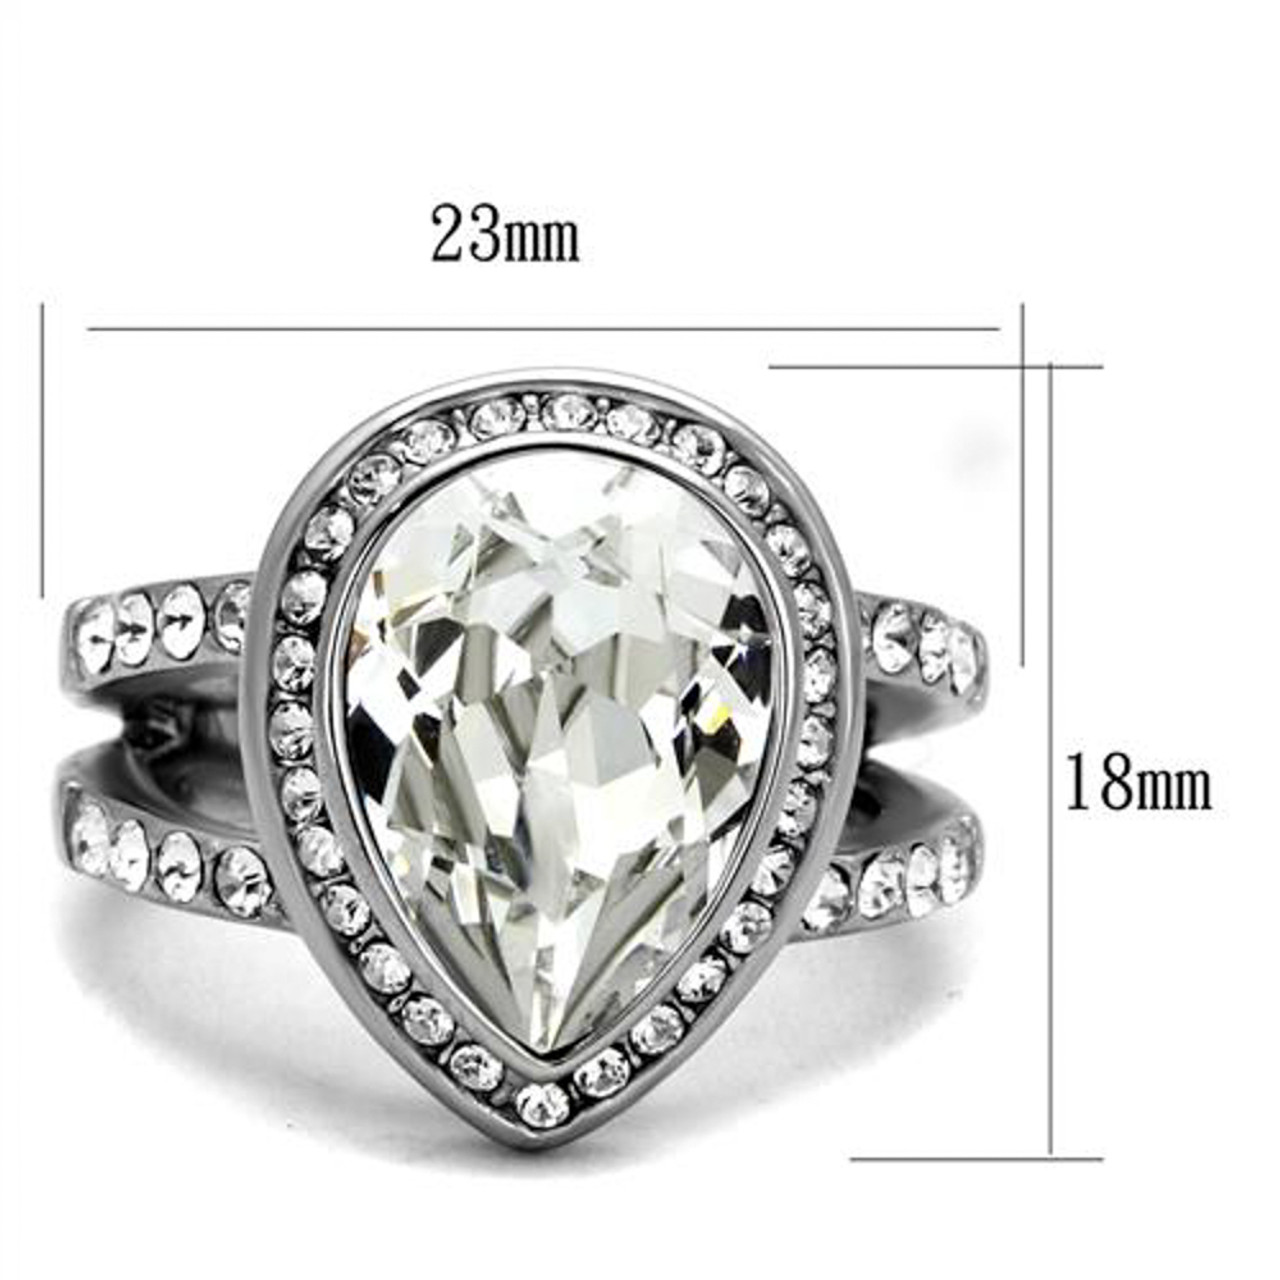 STAINLESS STEEL 1.08CT PEAR CUT ZIRCONIA HALO ENGAGEMENT//COCKTAIL RING SIZE 5-10